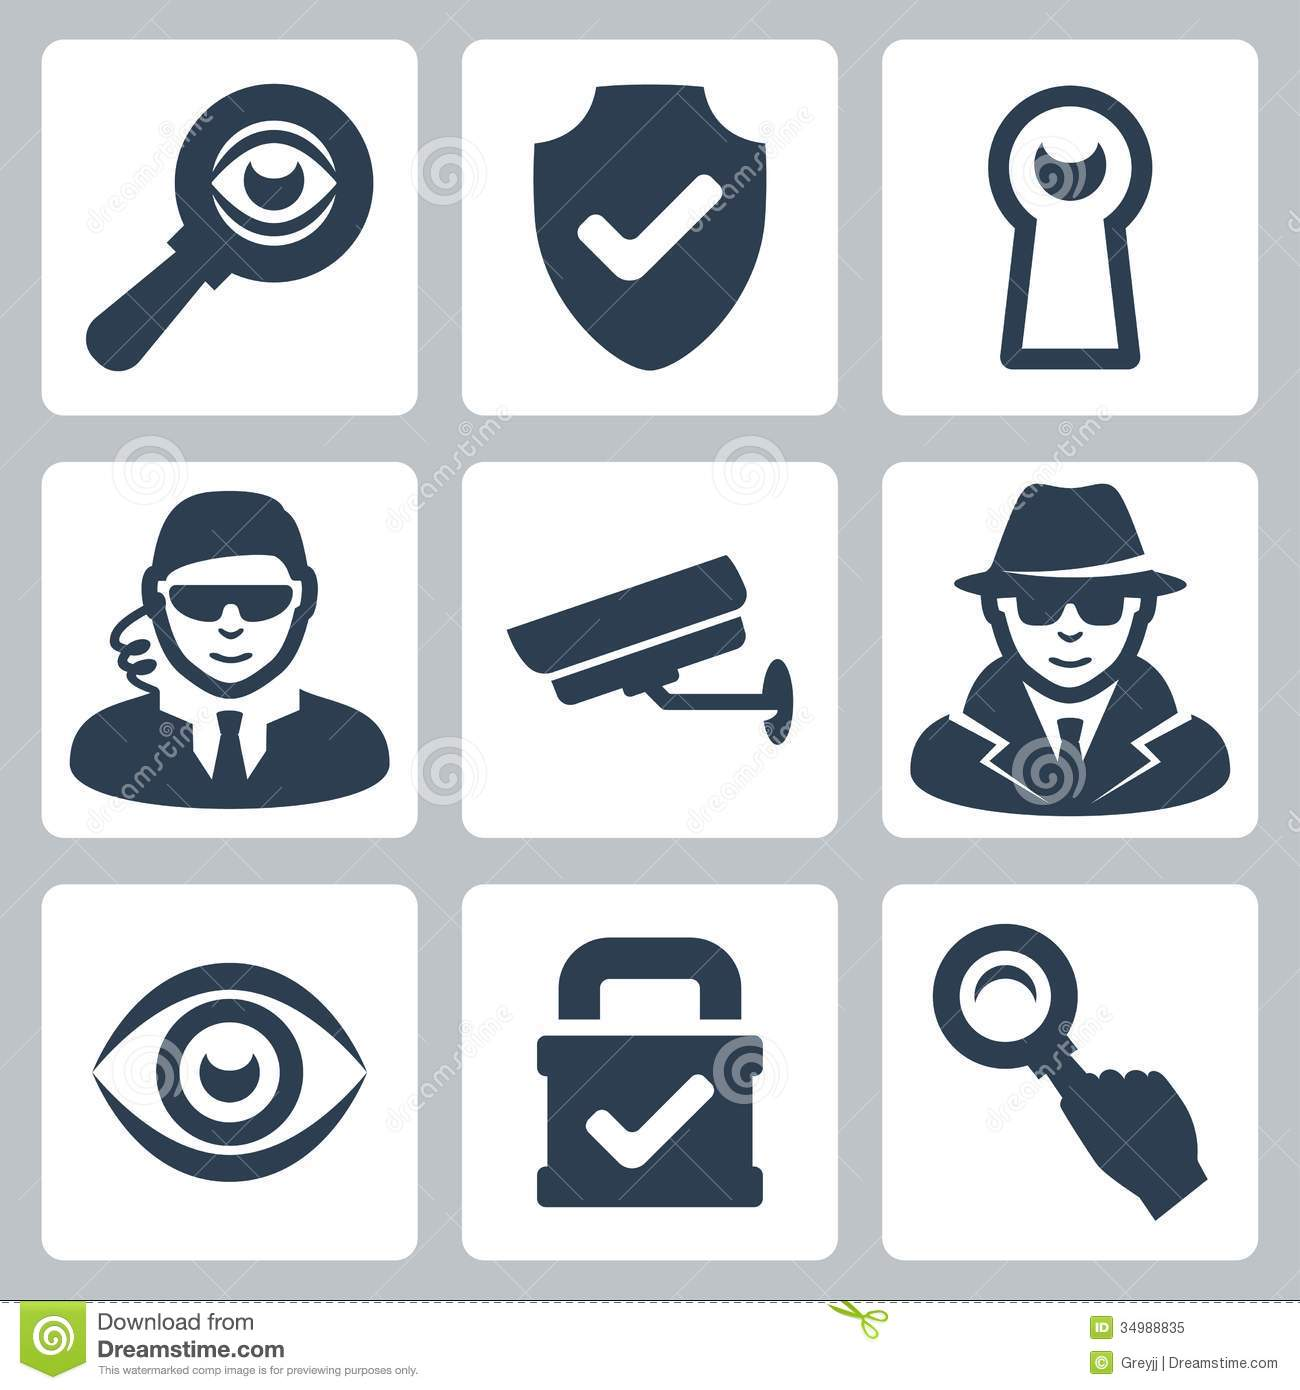 6 Security Icon Vector Images